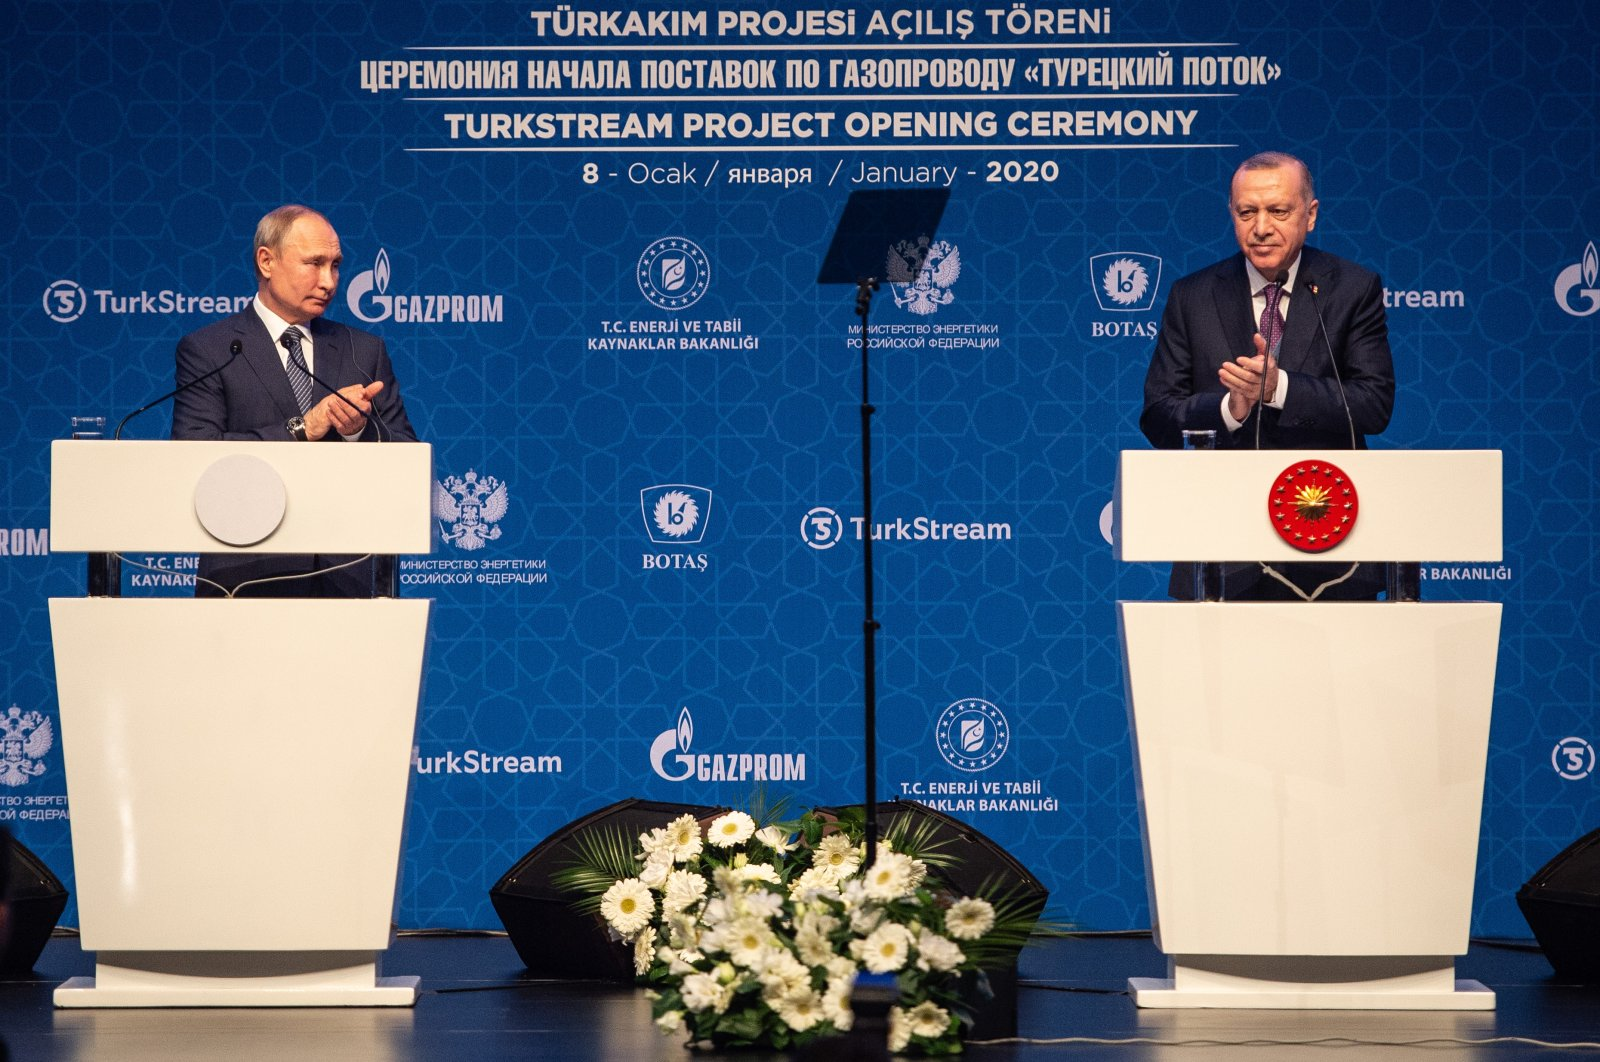 President Recep Tayyip Erdogan and Russian President Vladimir Putin (L) at the opening ceremony of the Turkstream gas pipeline project, Istanbul, Turkey, Jan. 8, 2020. (Photo by Getty Images)